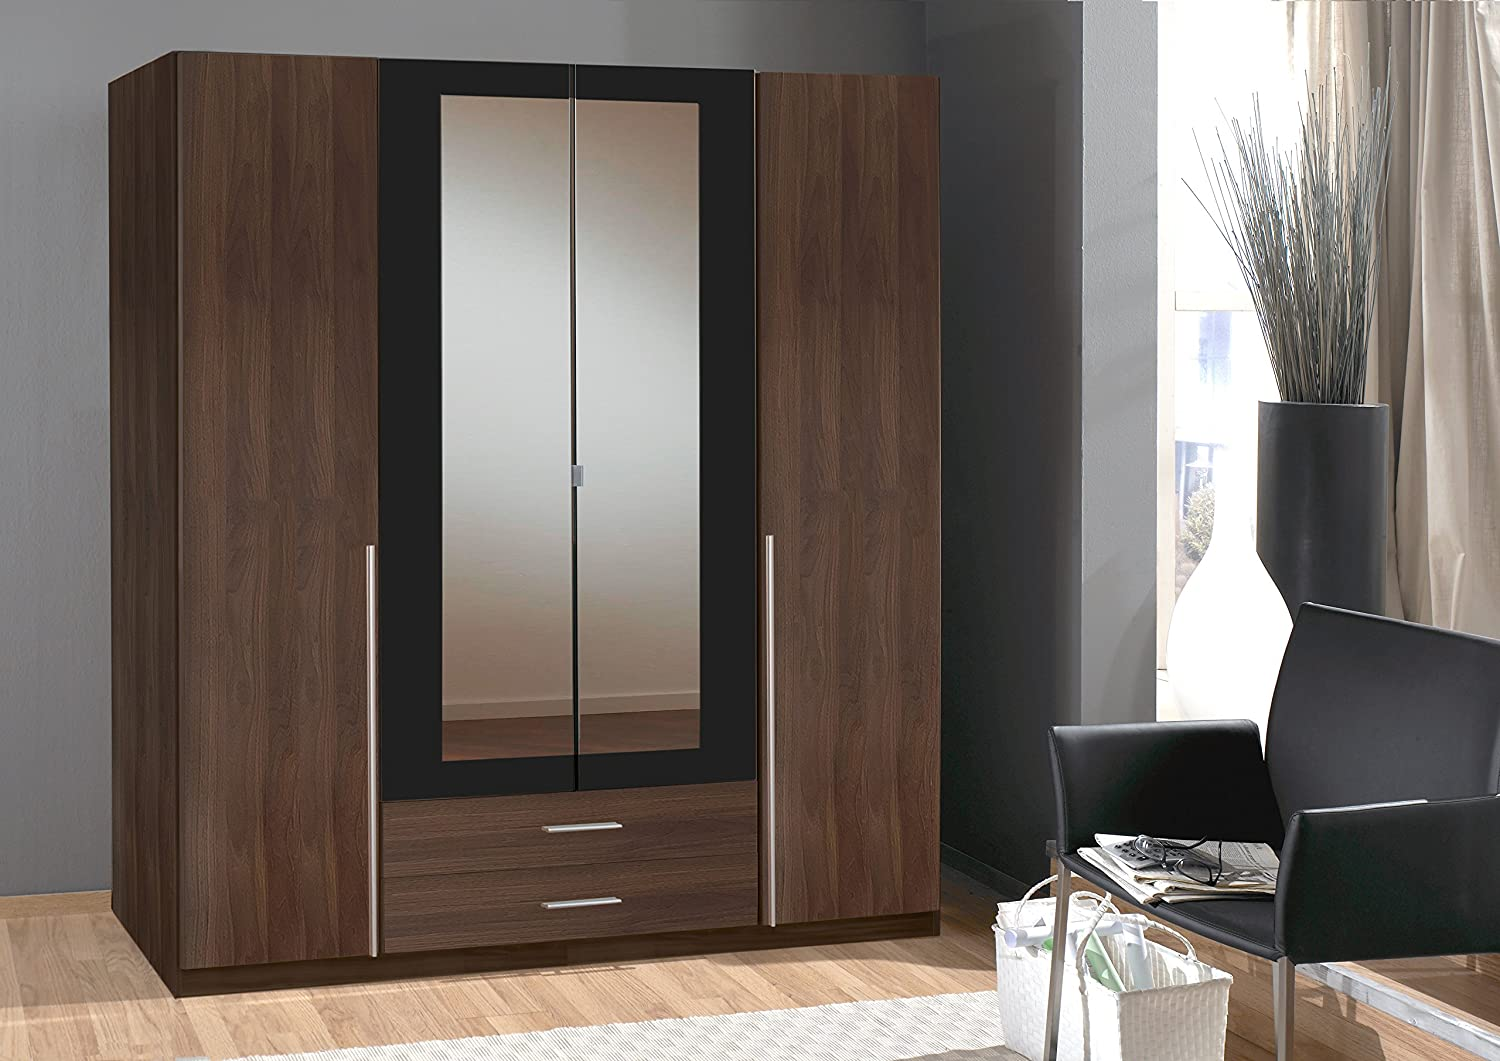 Bnew German Made Wardrobe In  Doors With Mirrors In Walnut White Bedroom  Cm White Amazon Co Uk Kitchen Home